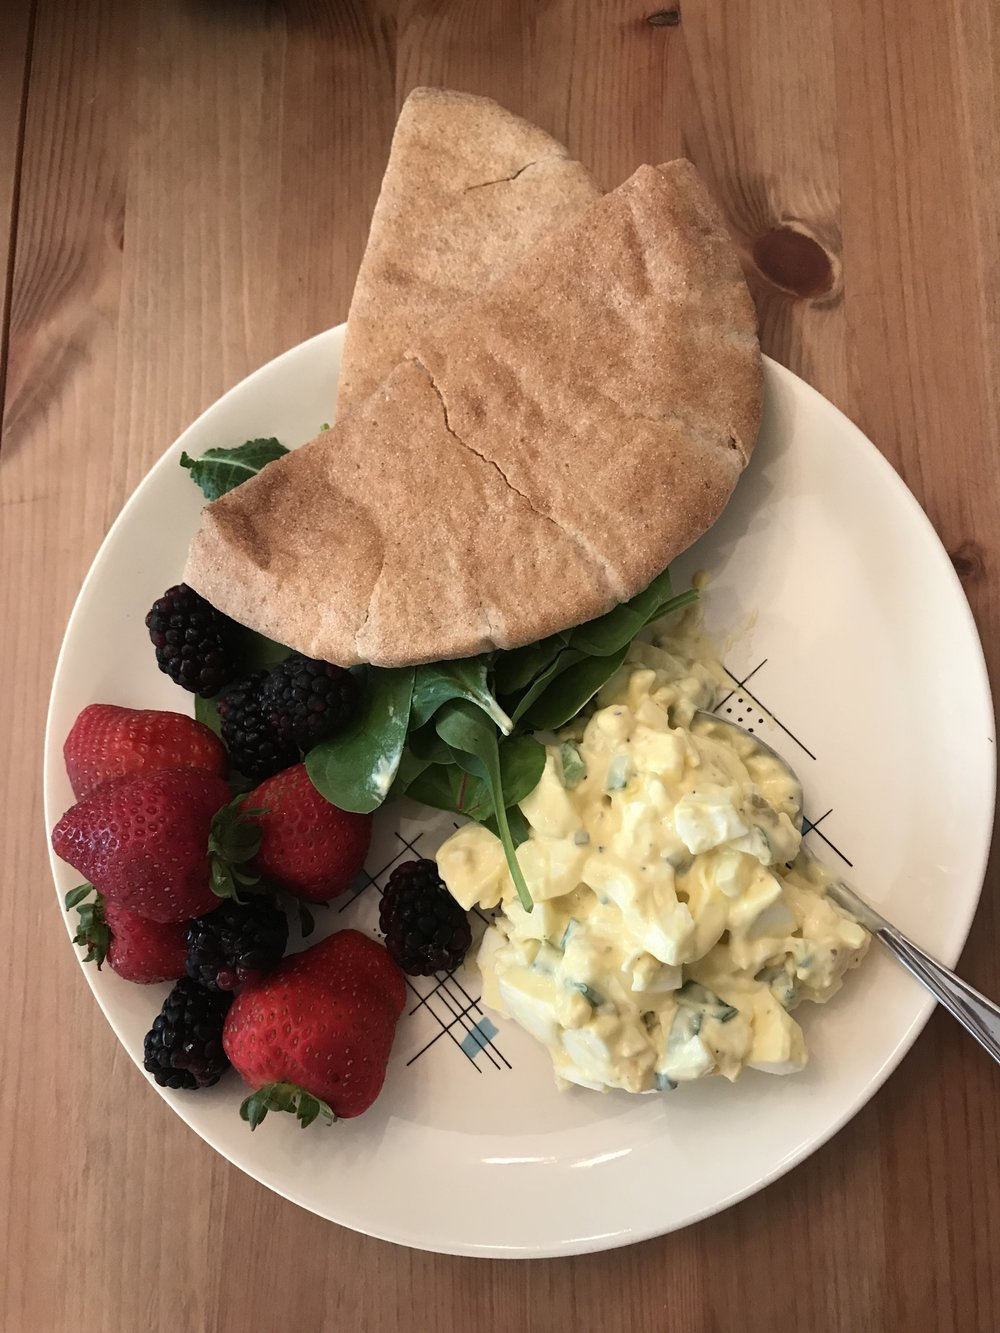 Classic Egg Salad - With greens, pita pocket and fruit salad